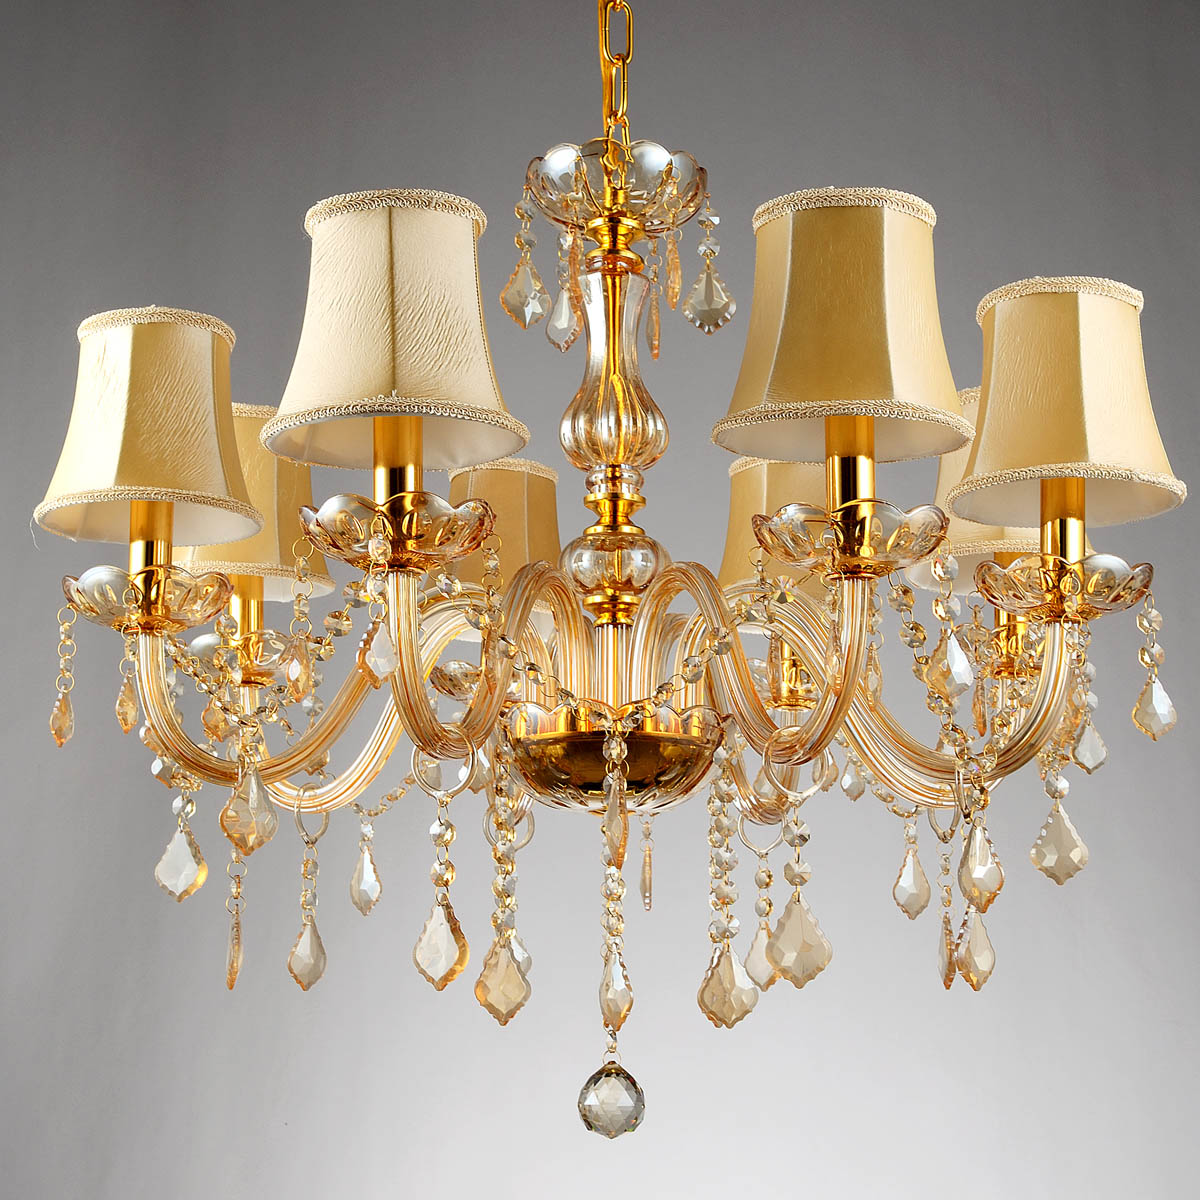 Free ship 68 arms fashion crystal chandelier lighting bedroom free ship 68 arms fashion crystal chandelier lighting bedroom pendant chandelier champagne color gold crystal lighting lamps in pendant lights from lights arubaitofo Images